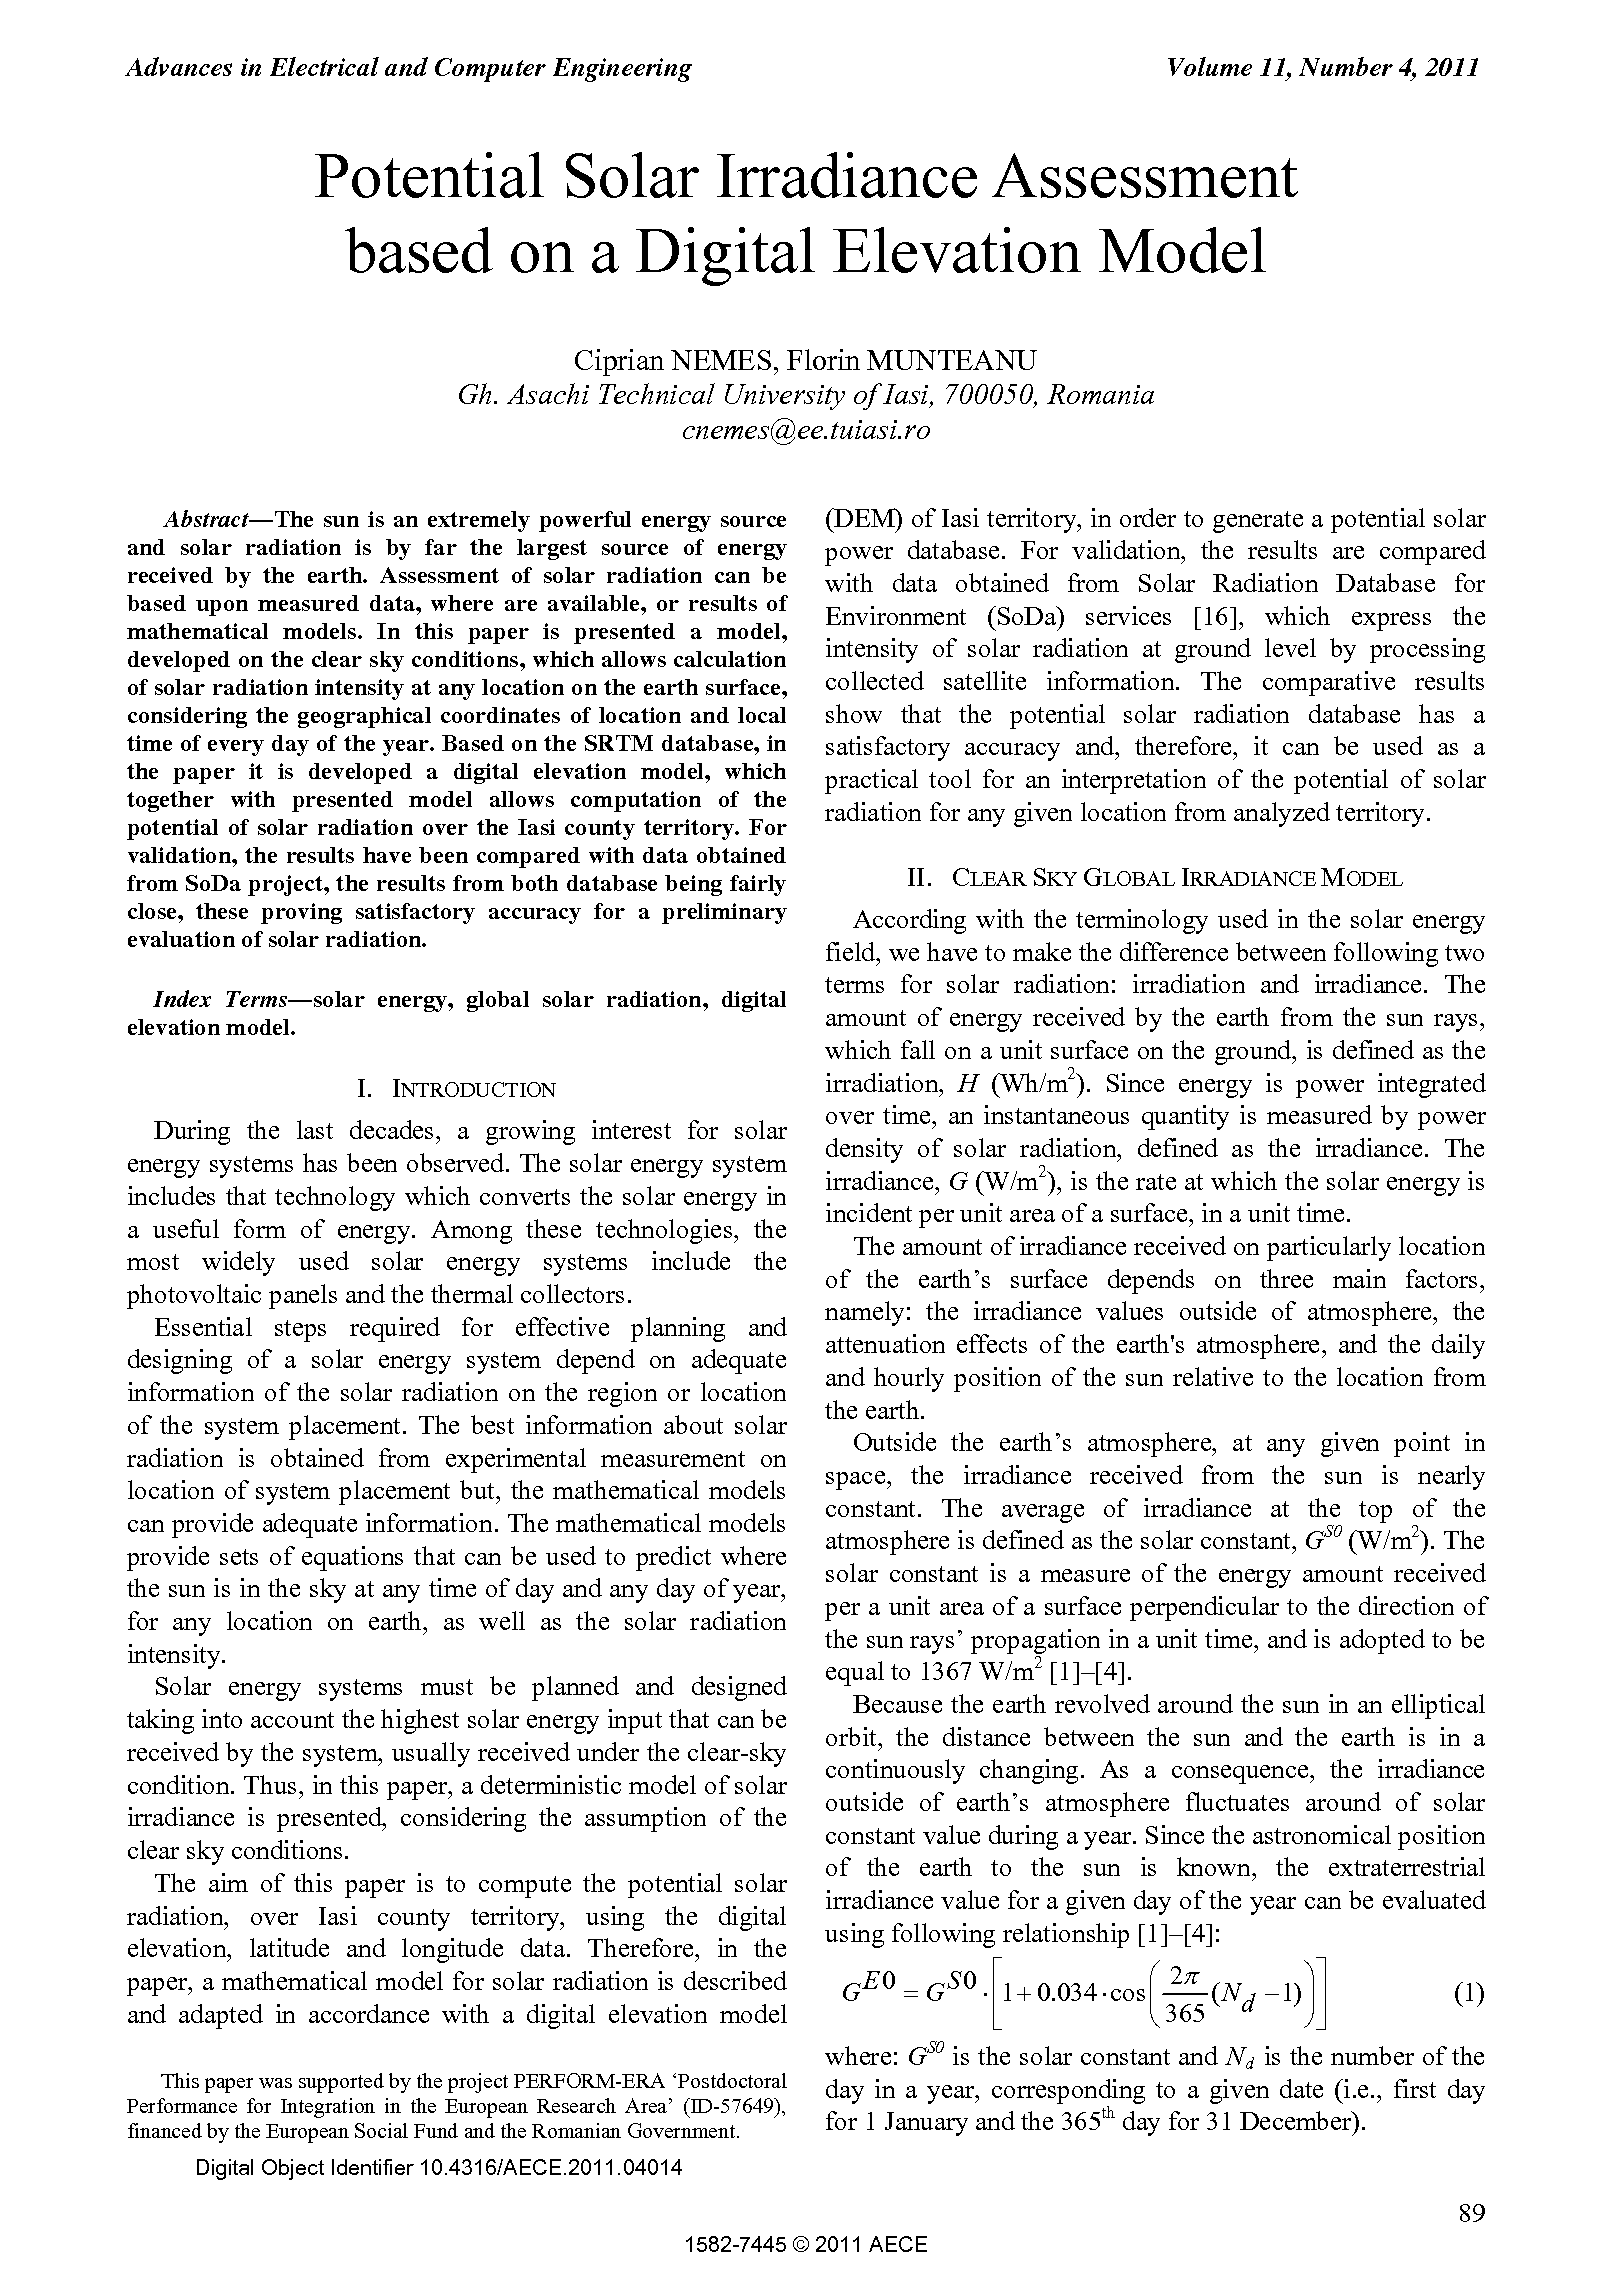 PDF Quickview for paper with DOI:10.4316/AECE.2011.04014